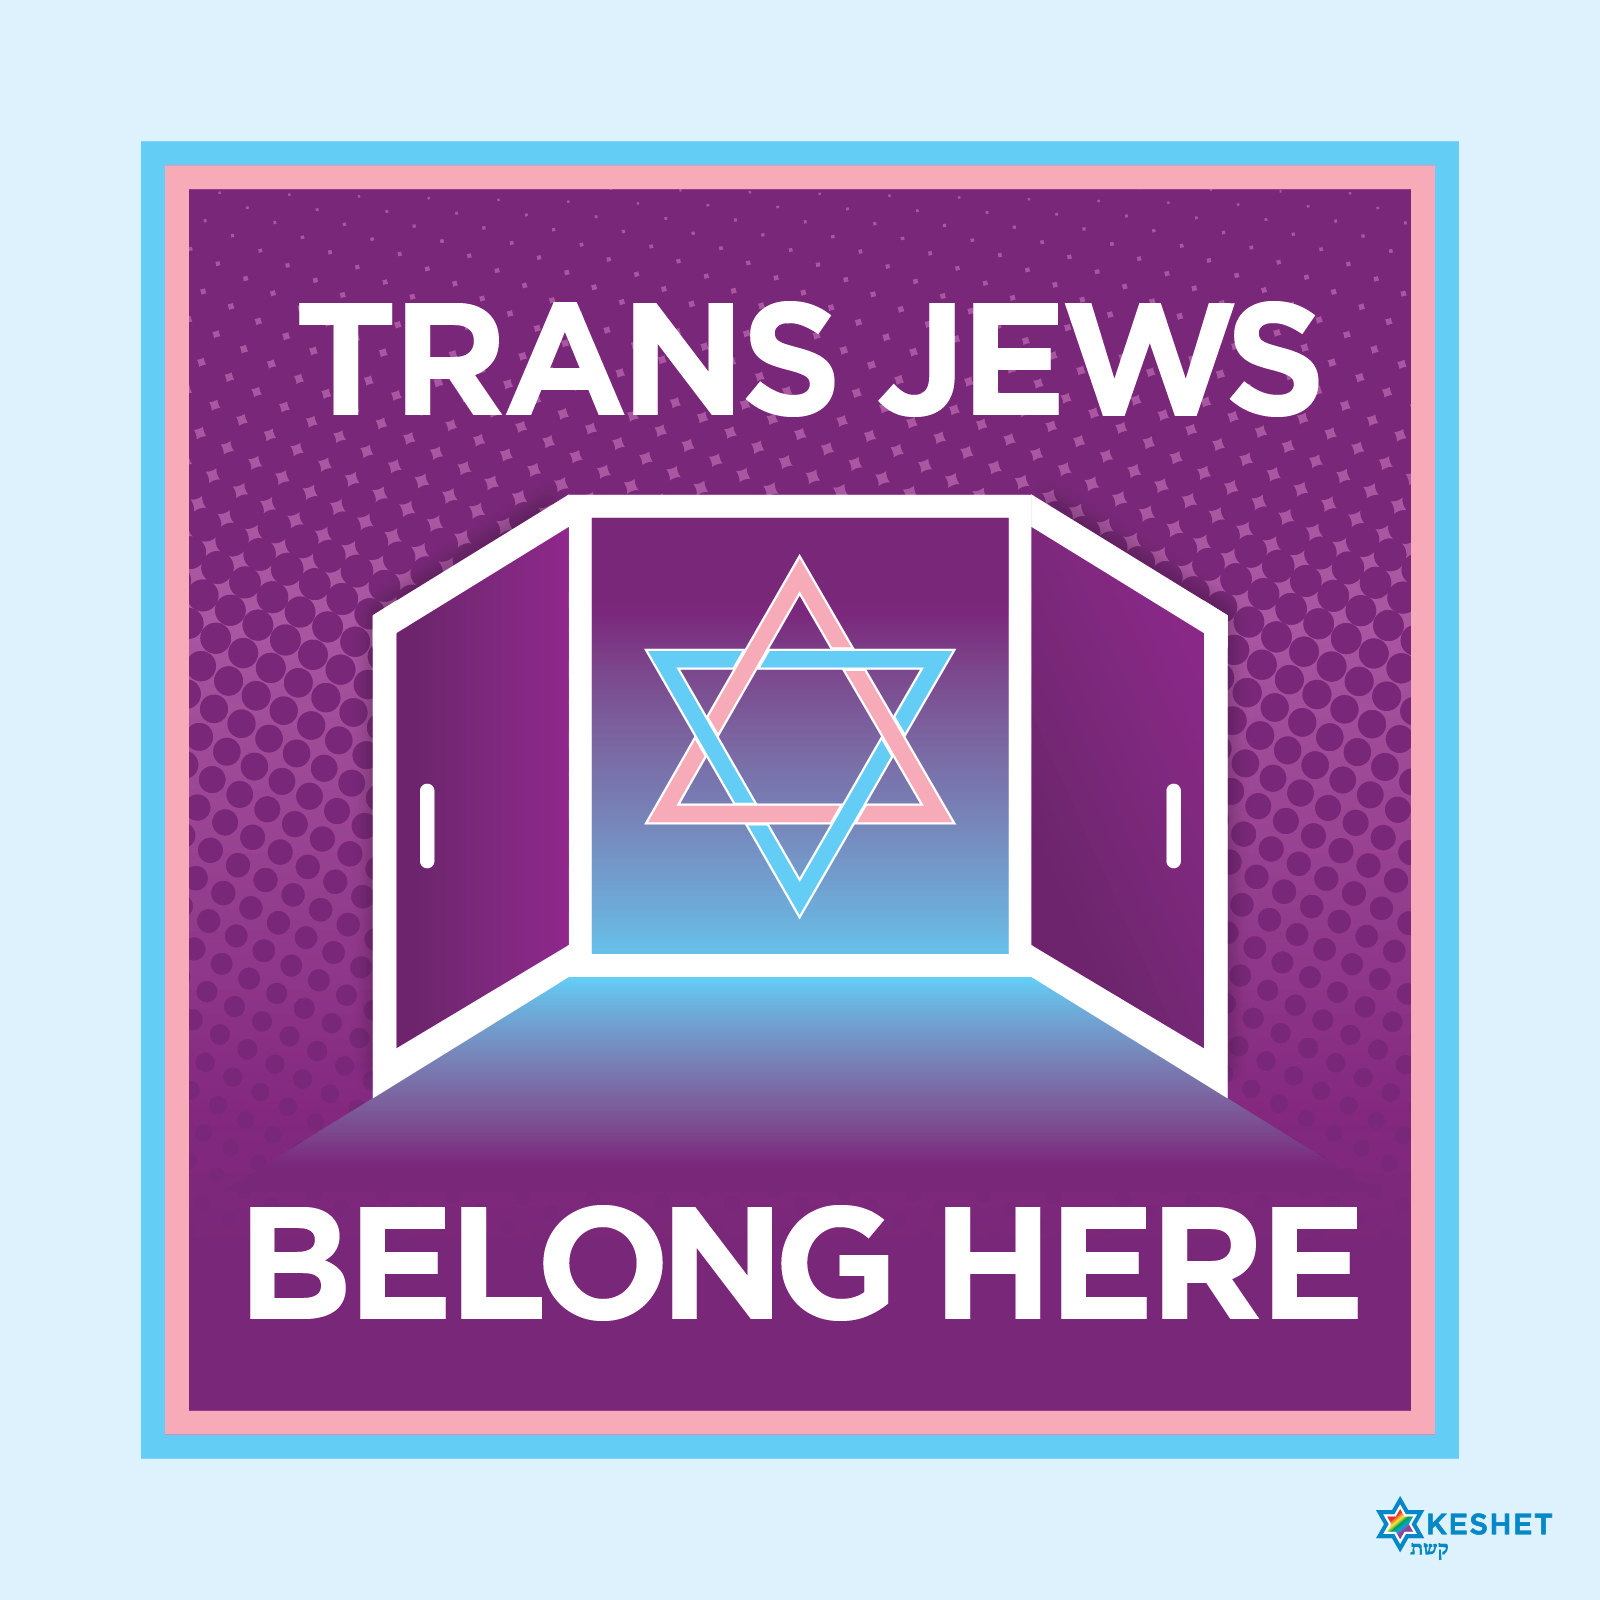 Trans Jews Belong Here!